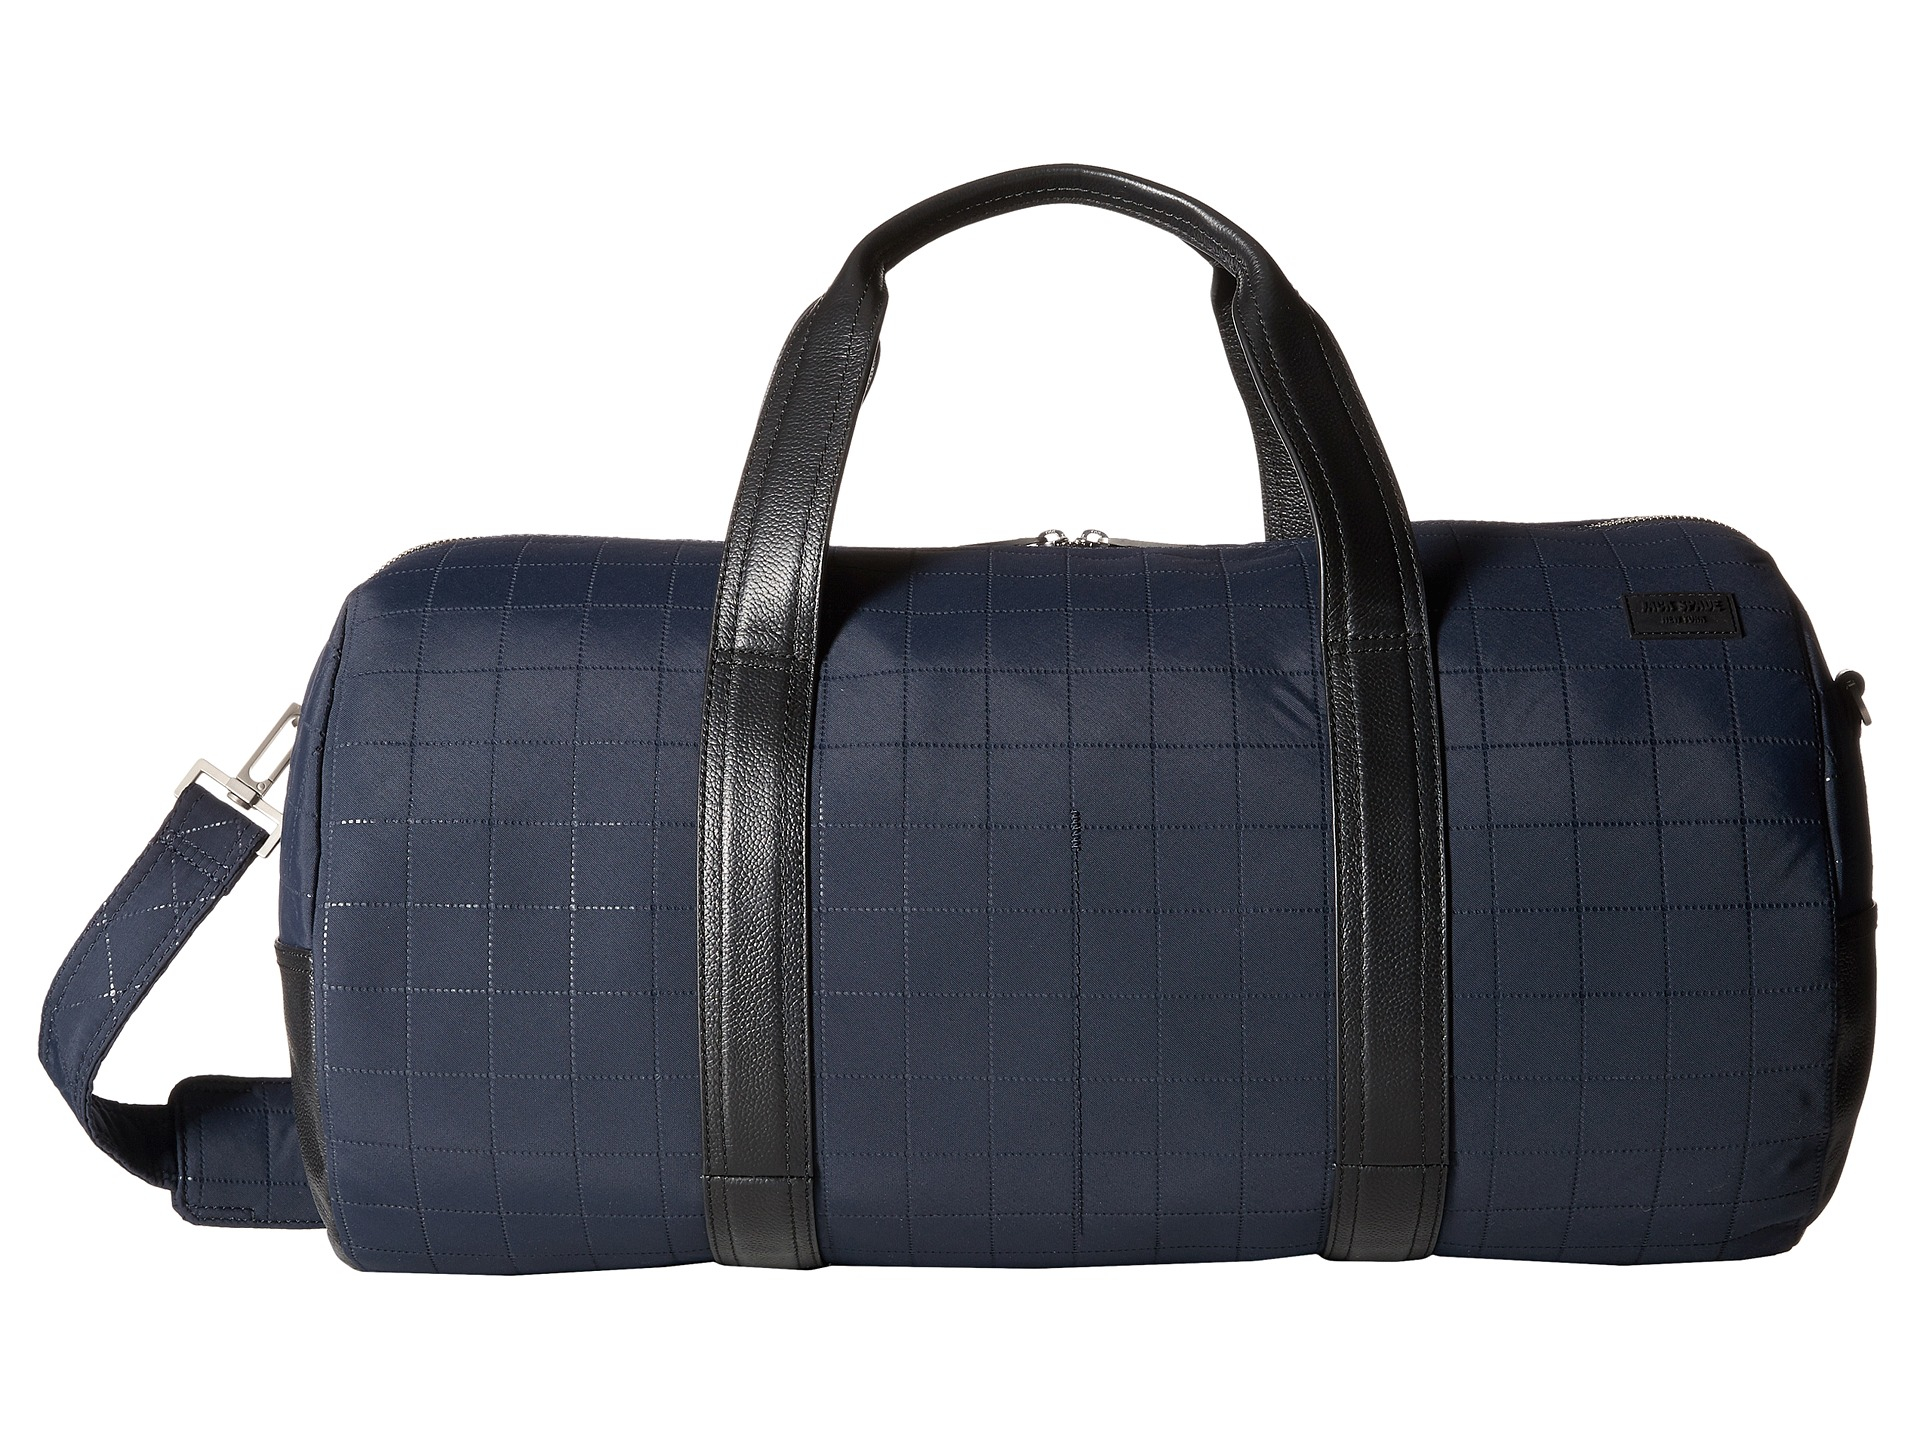 2a3a83e4c66a Lyst - Jack Spade Quilted Tech Nylon Duffel in Blue for Men